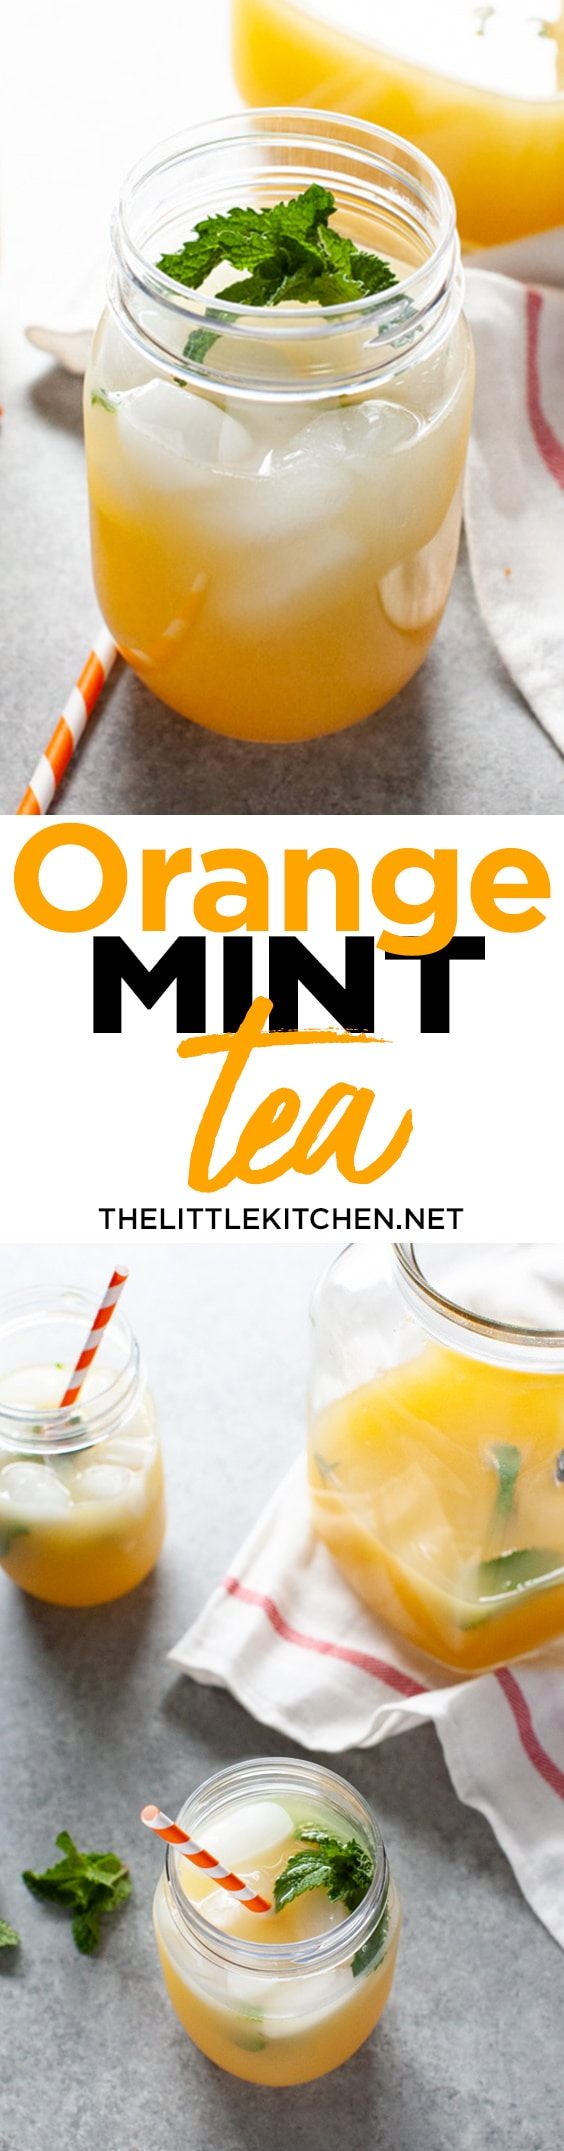 Orange Mint Tea from thelittlekitchen.net